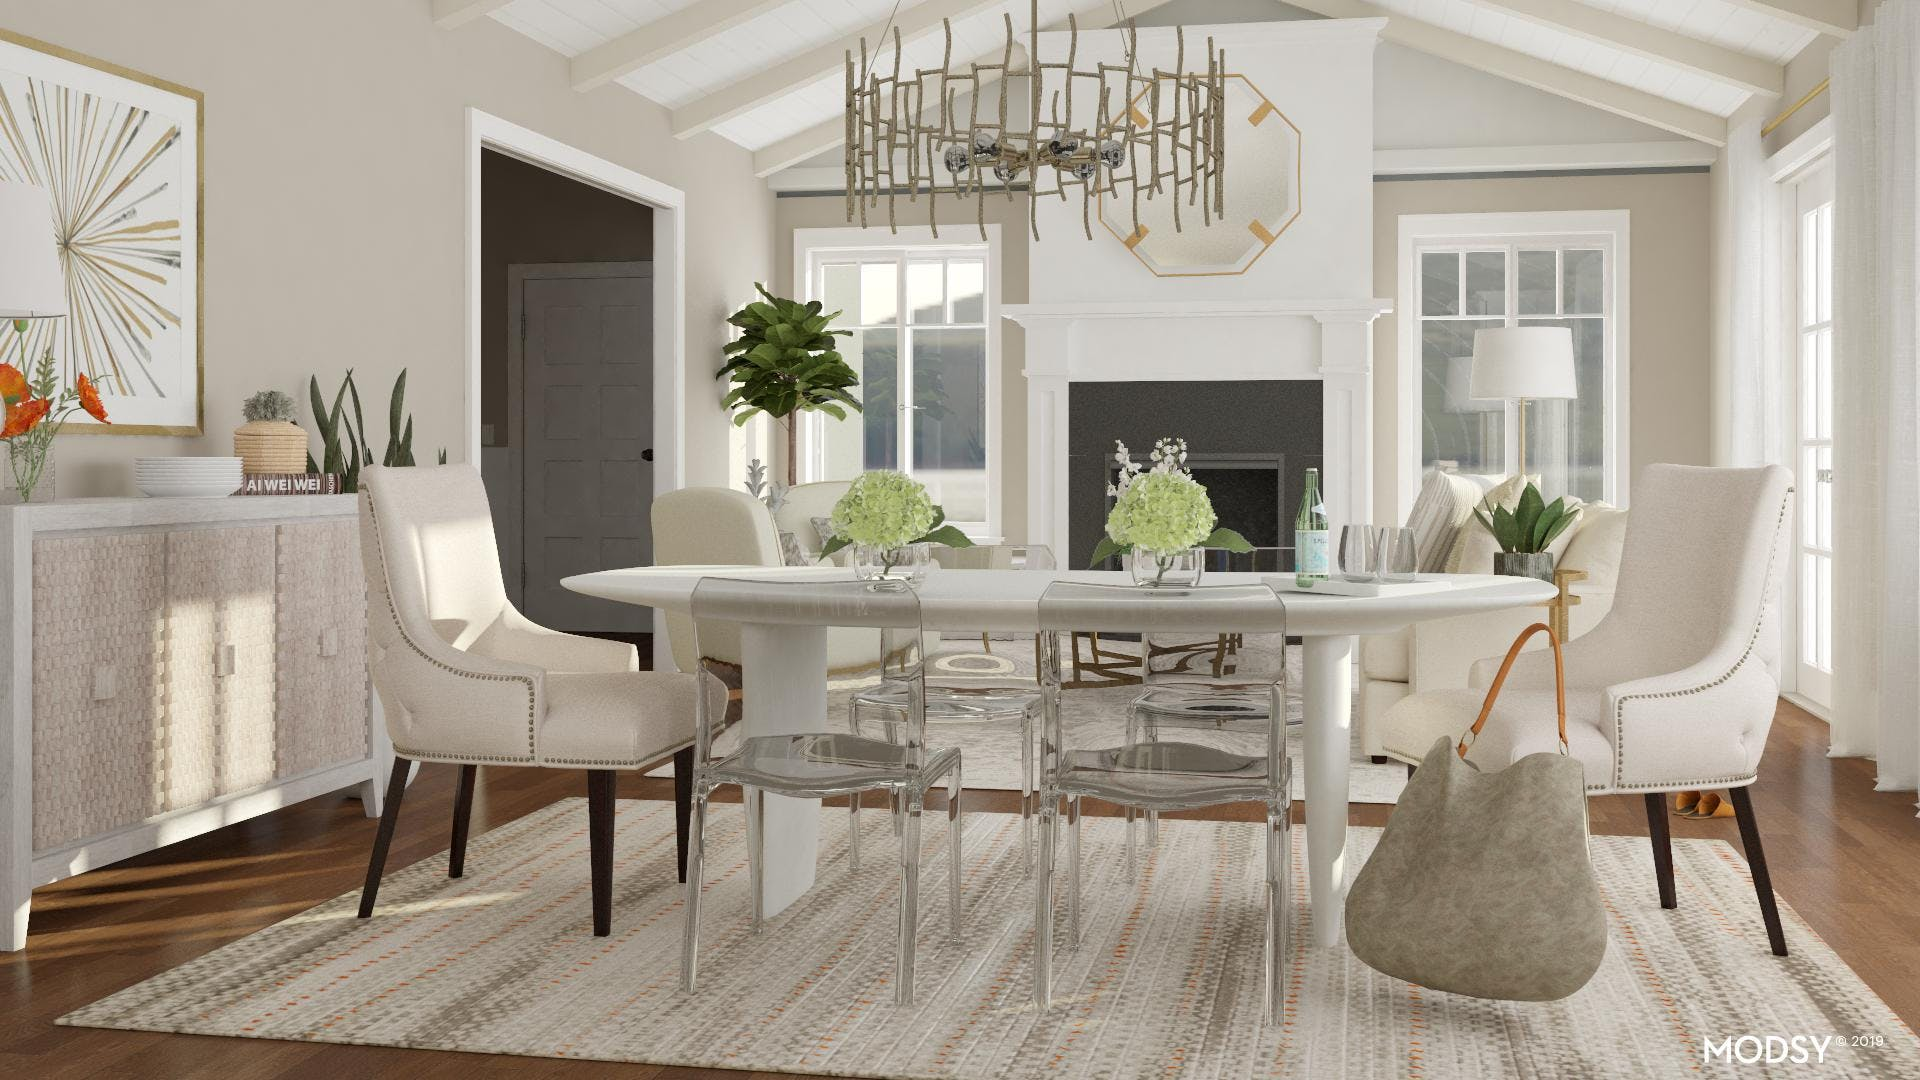 Eclectic Chair Mix: Glam Dining